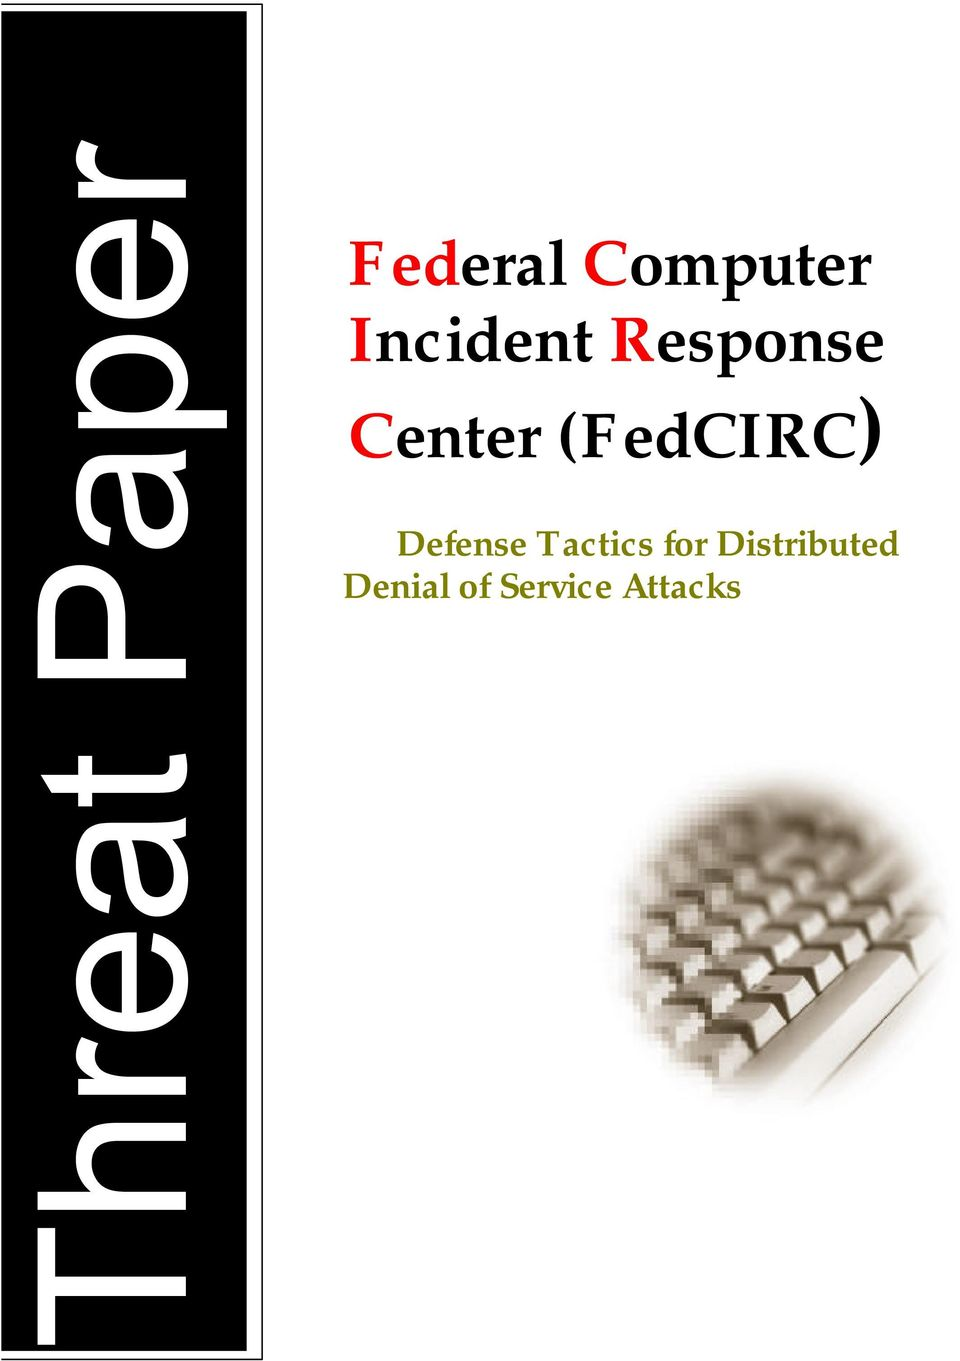 (FedCIRC) Defense Tactics for